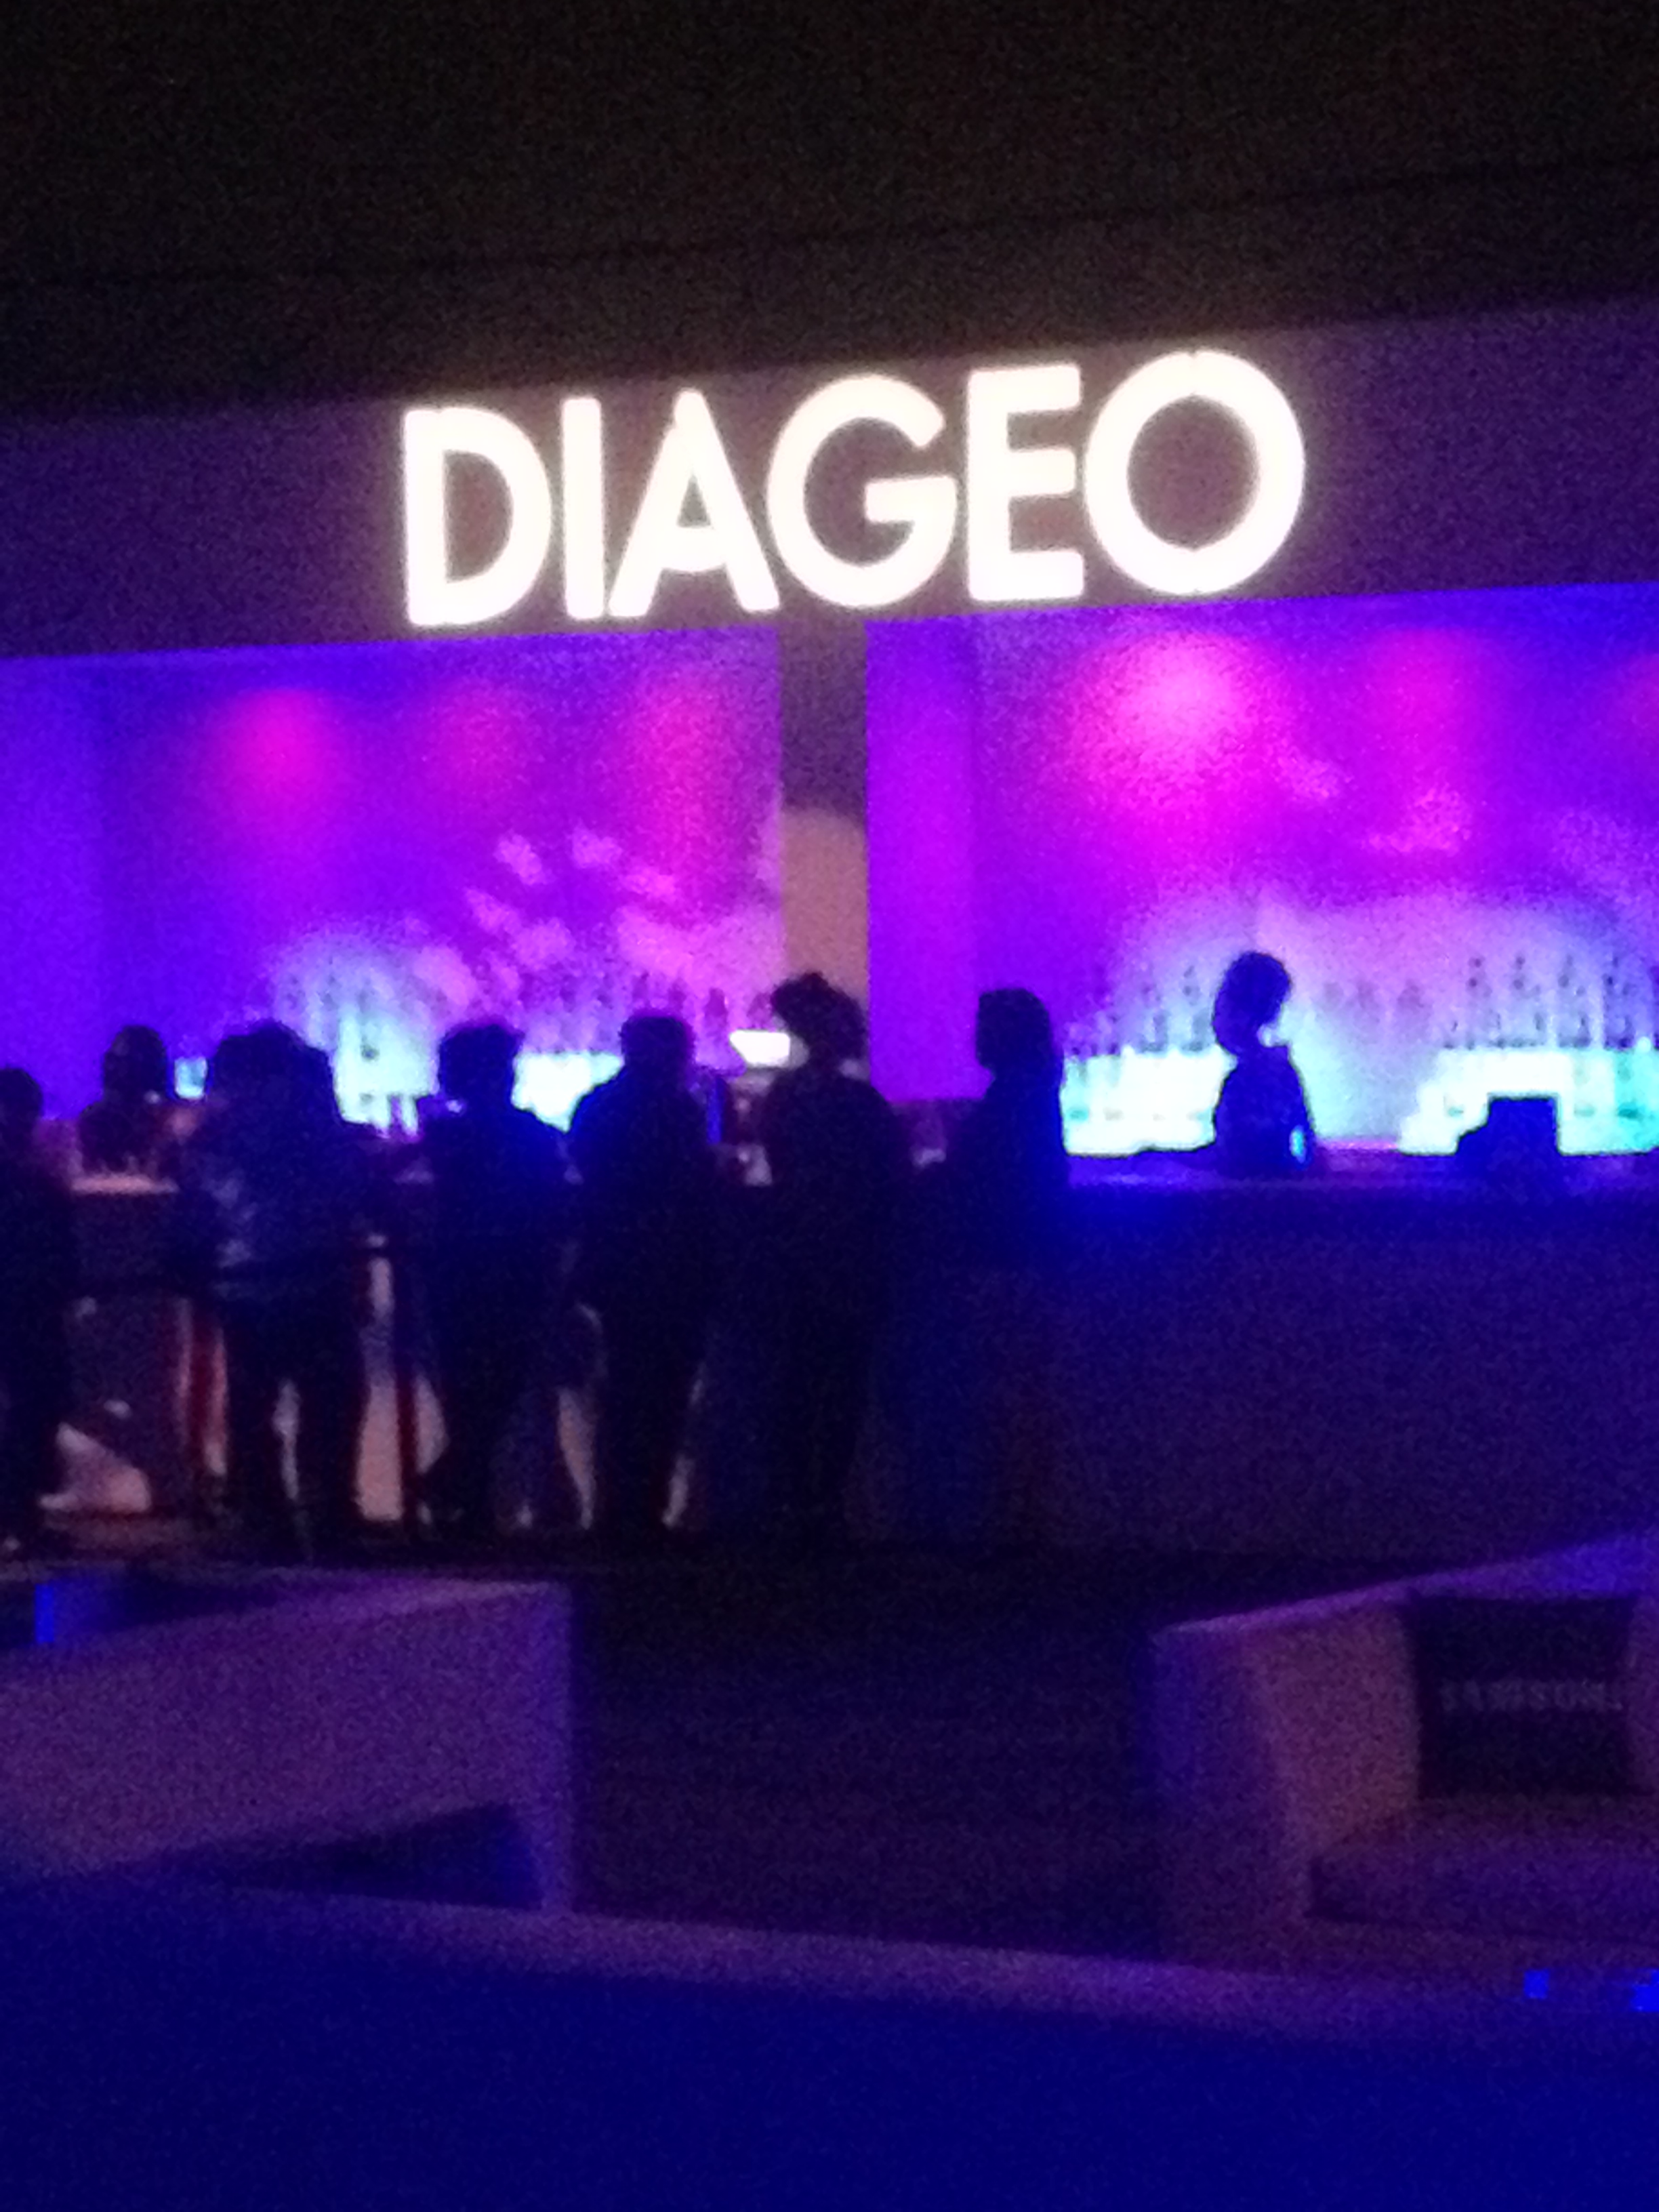 The Diageo Party